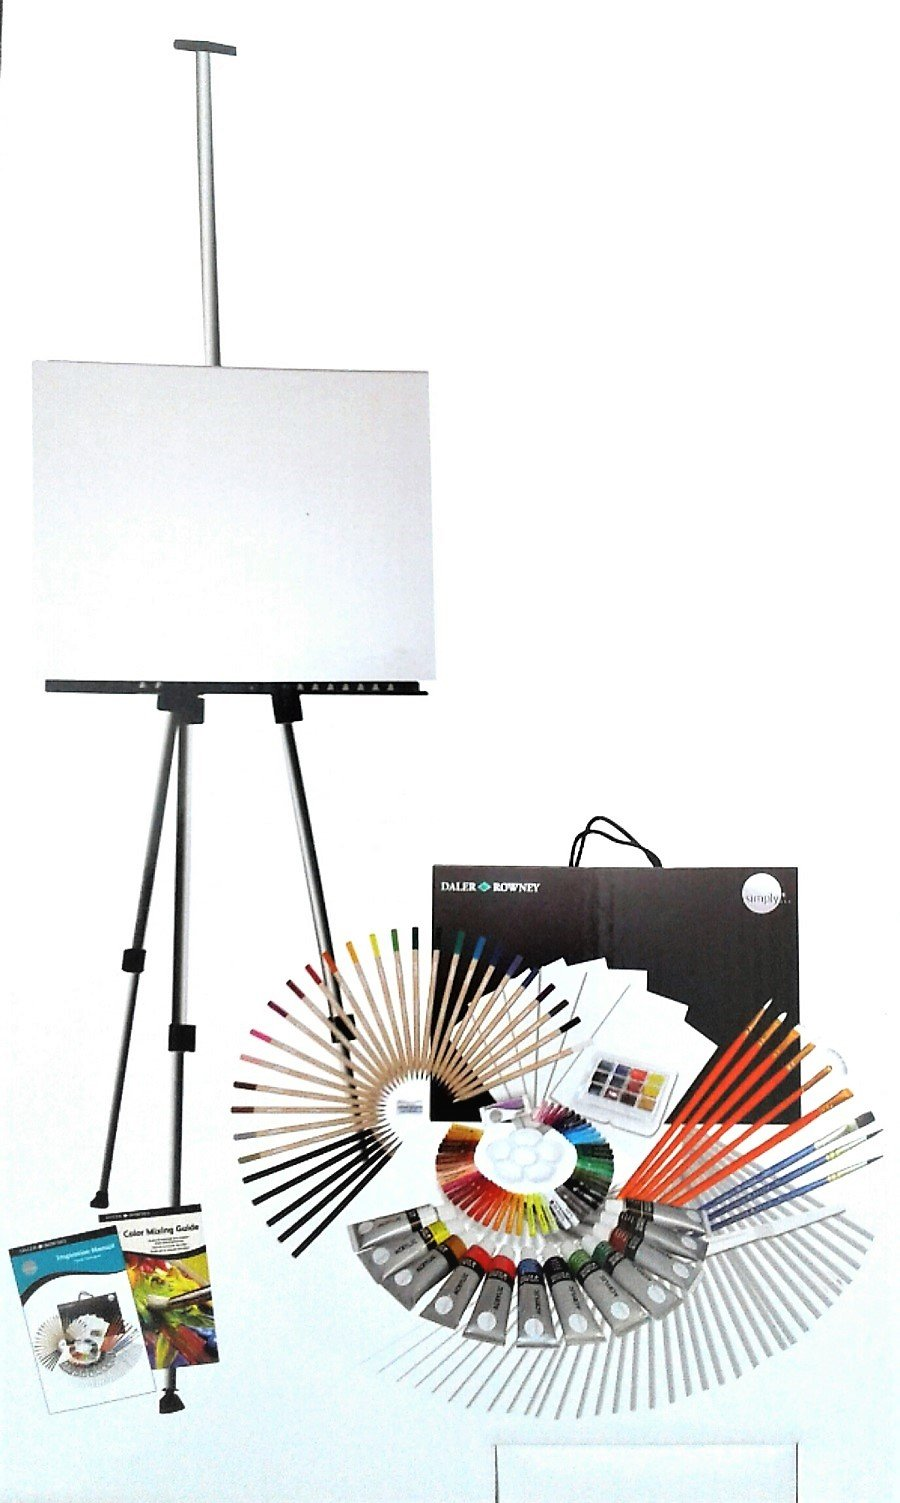 DELUXE ARTIST DRAWING & PAINTING SET ✺ 162 PIECES